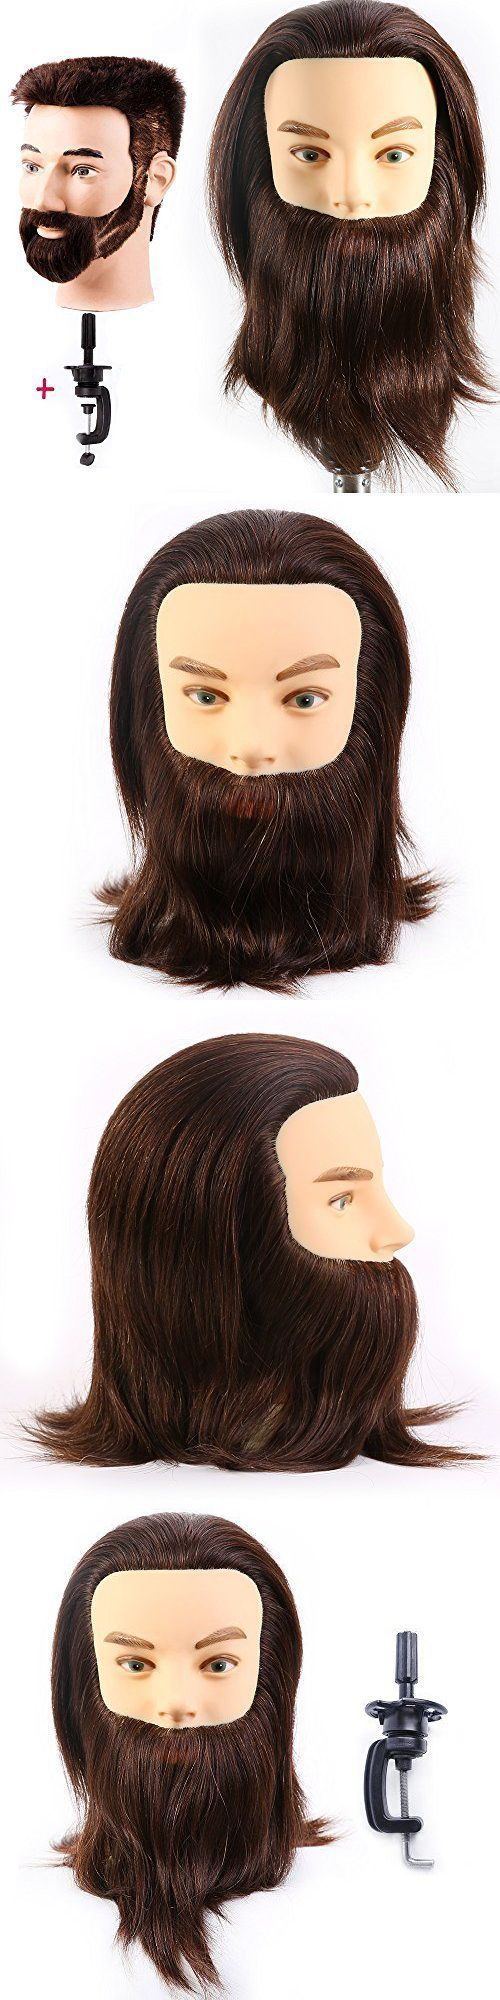 Hair and Makeup Mannequins: Male Mannequin Head 100% Human Hair Hairdresser Training Beard Barber Manikin -> BUY IT NOW ONLY: $37.19 on eBay!